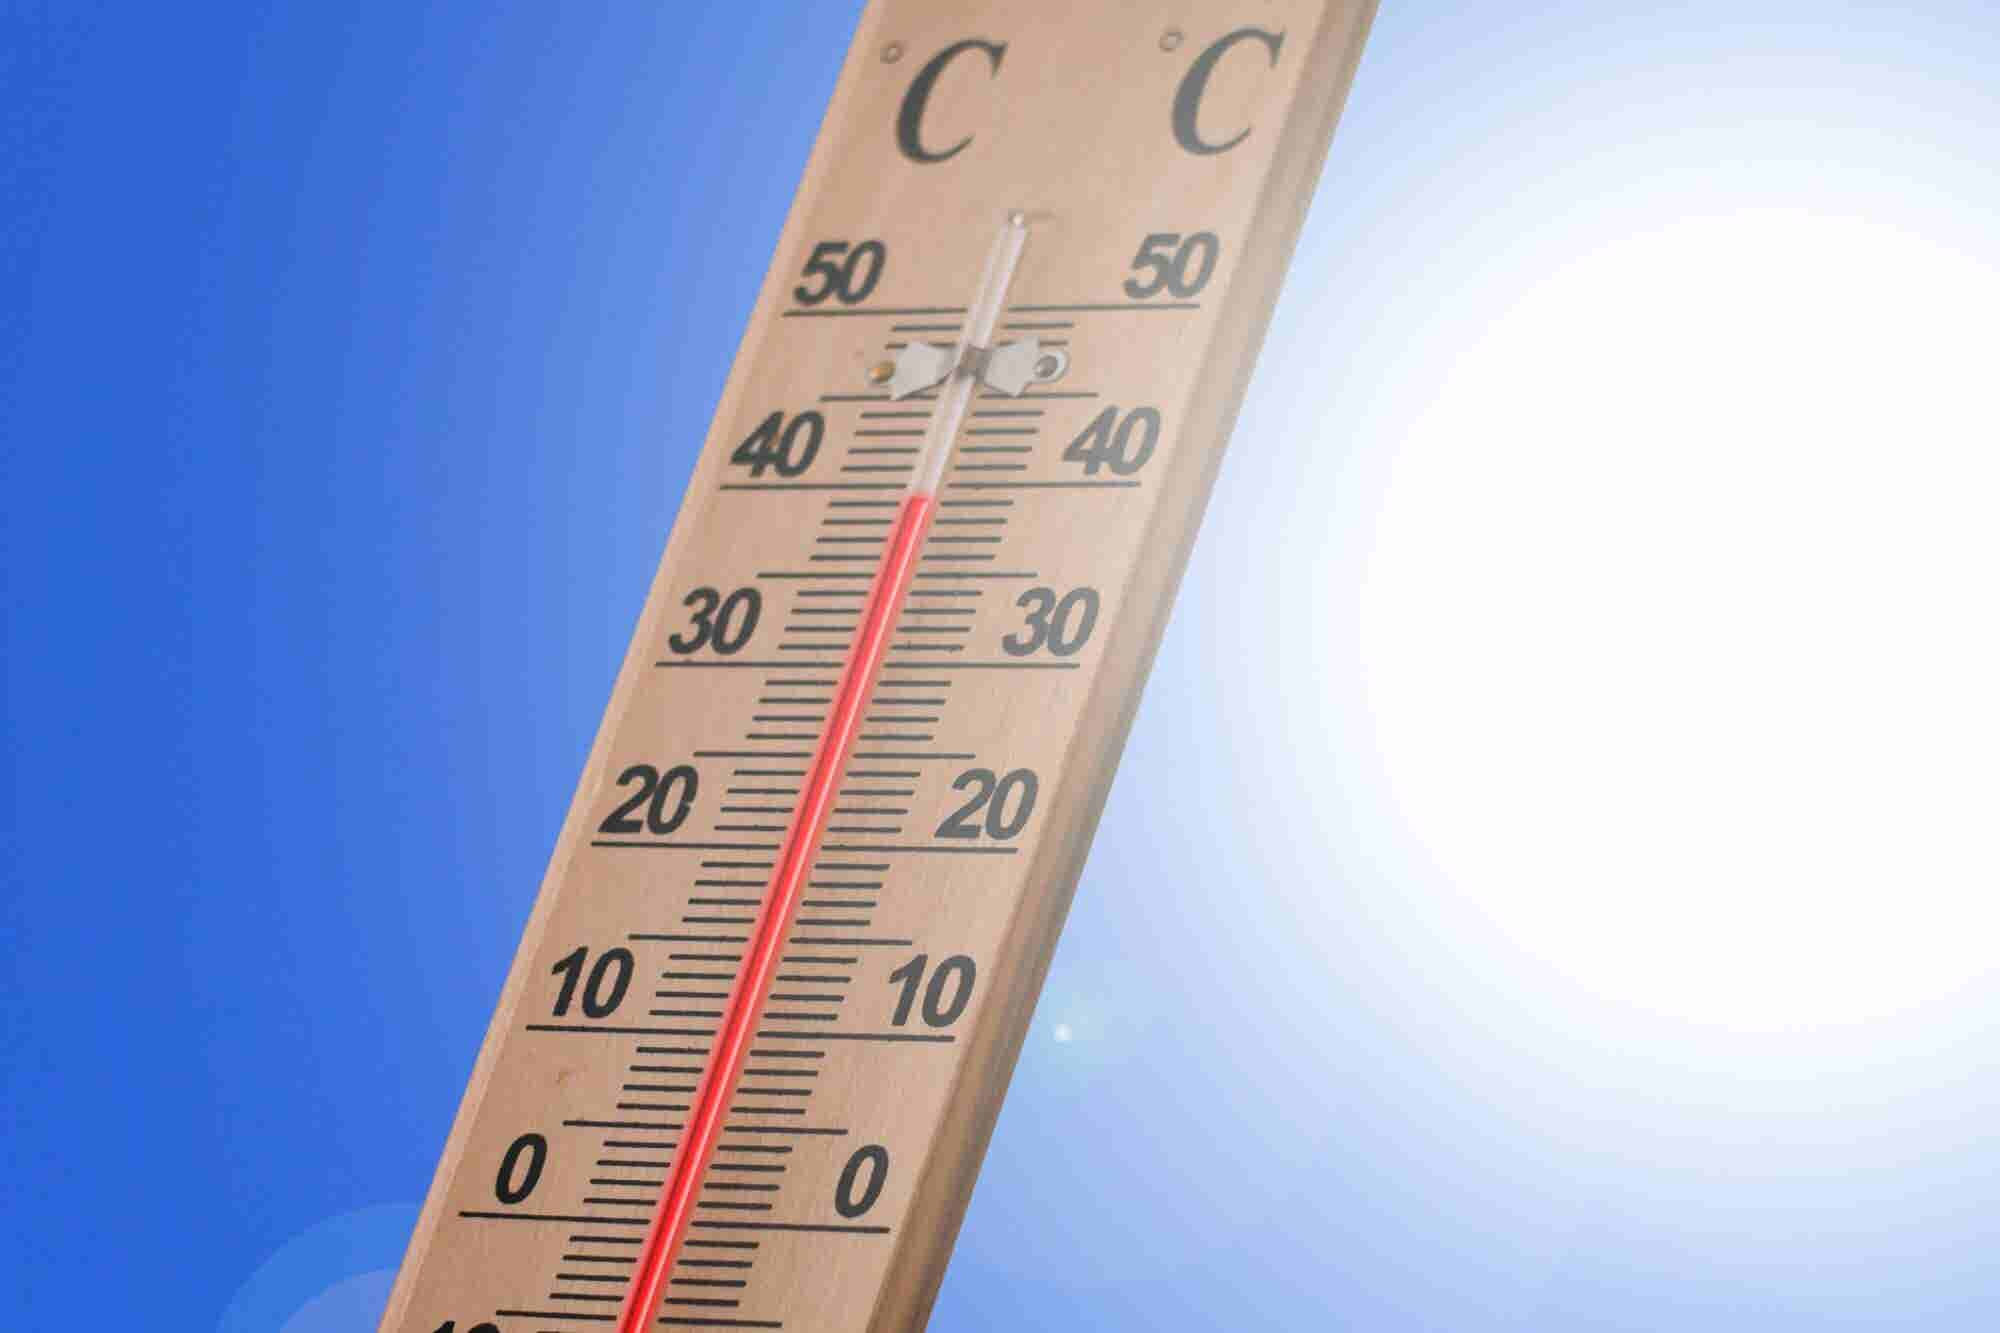 Temperature Impacts Workplace Productivity Too